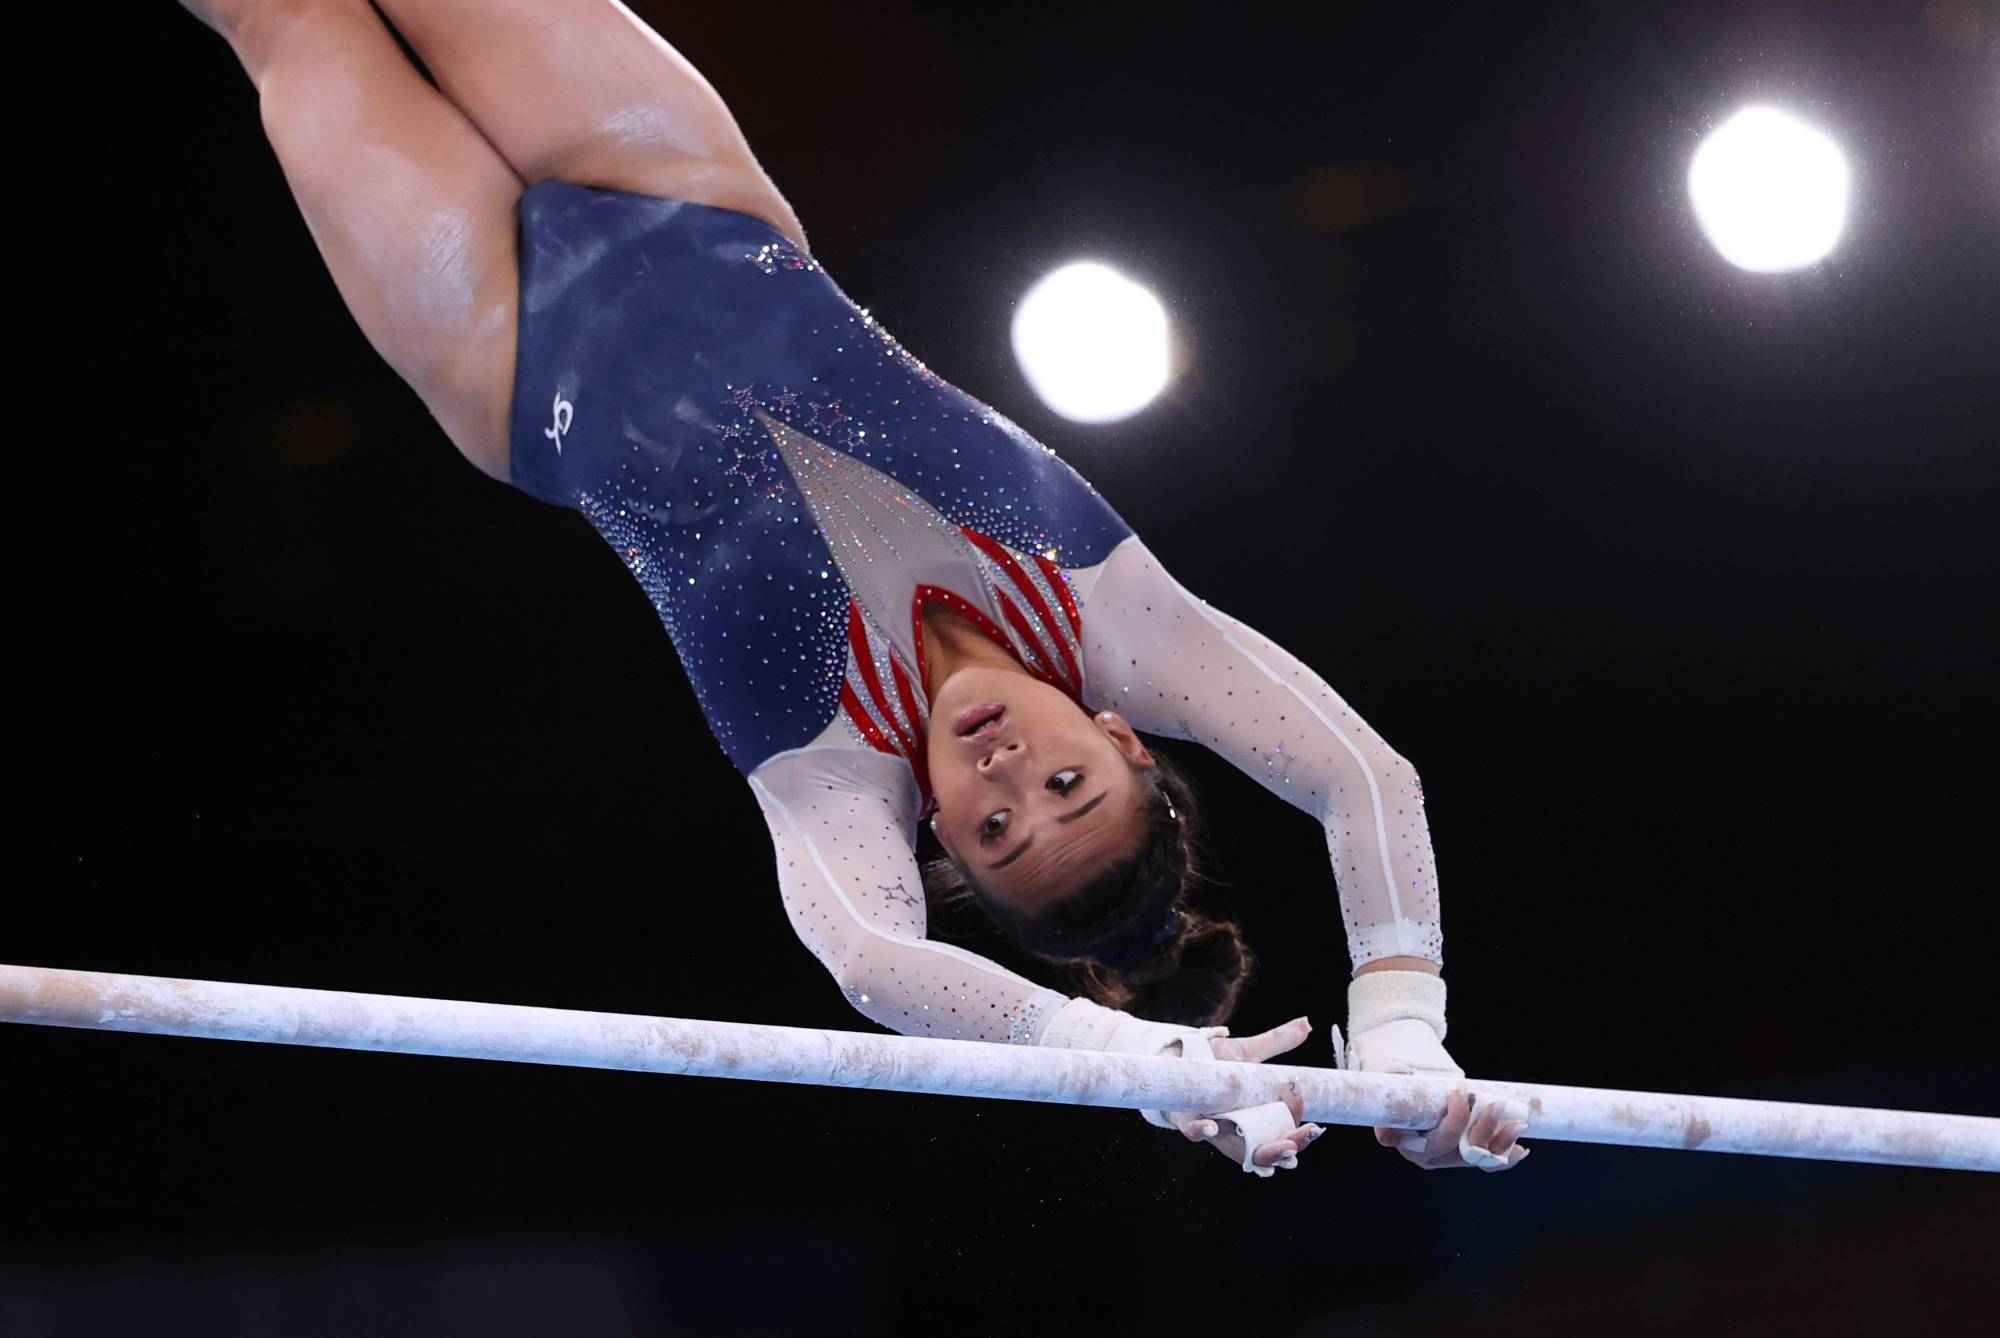 Gymnast Sunisa Lee of the United States in action on the uneven bars on Thursday. | REUTERS